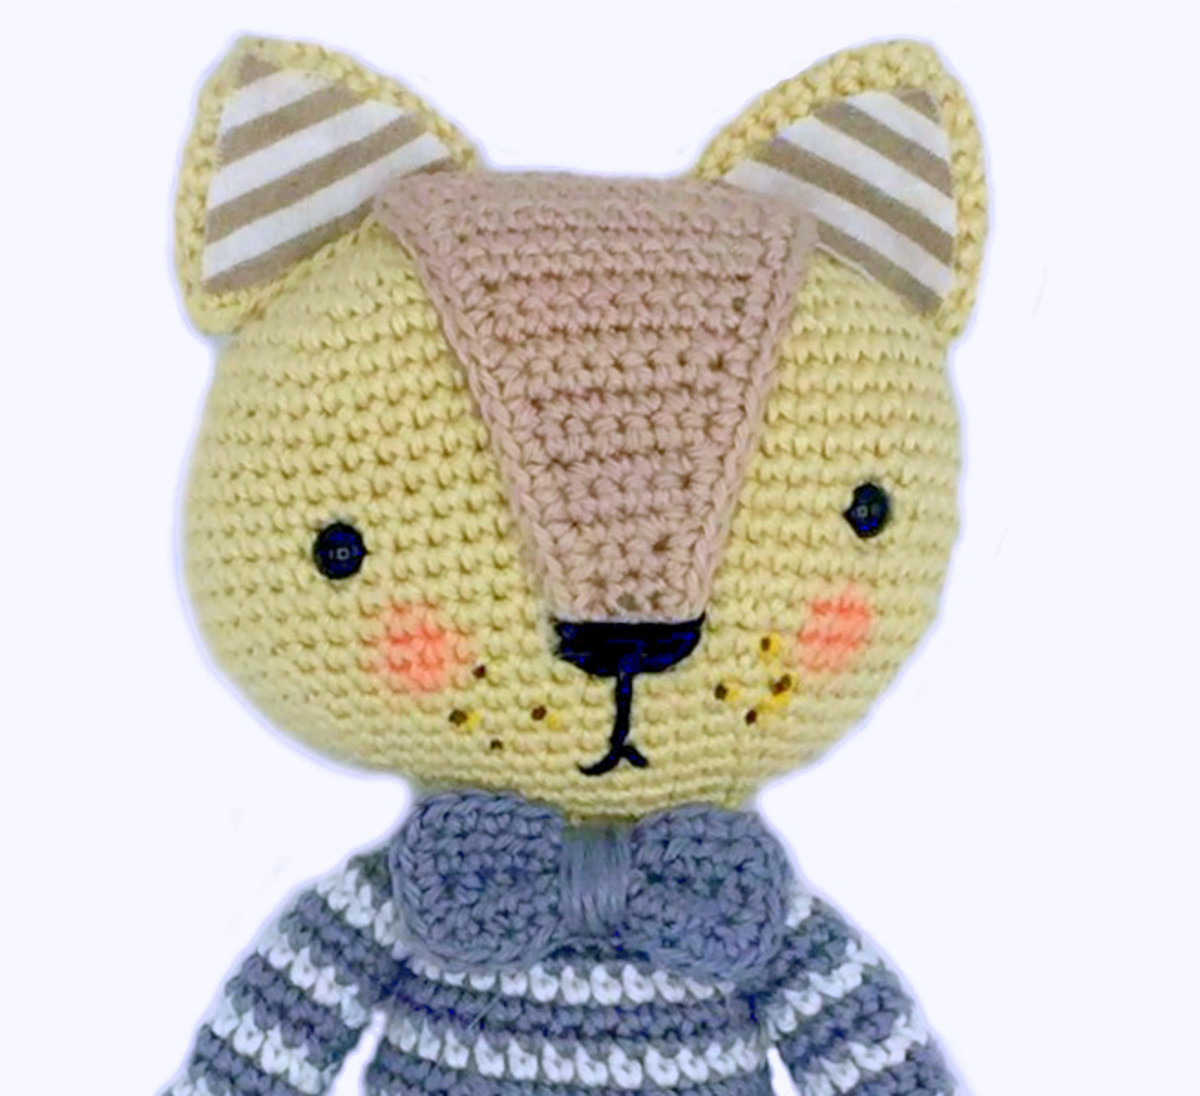 Joined rounds in amigurumi – colour changes and stripes | hookabee | 475x520